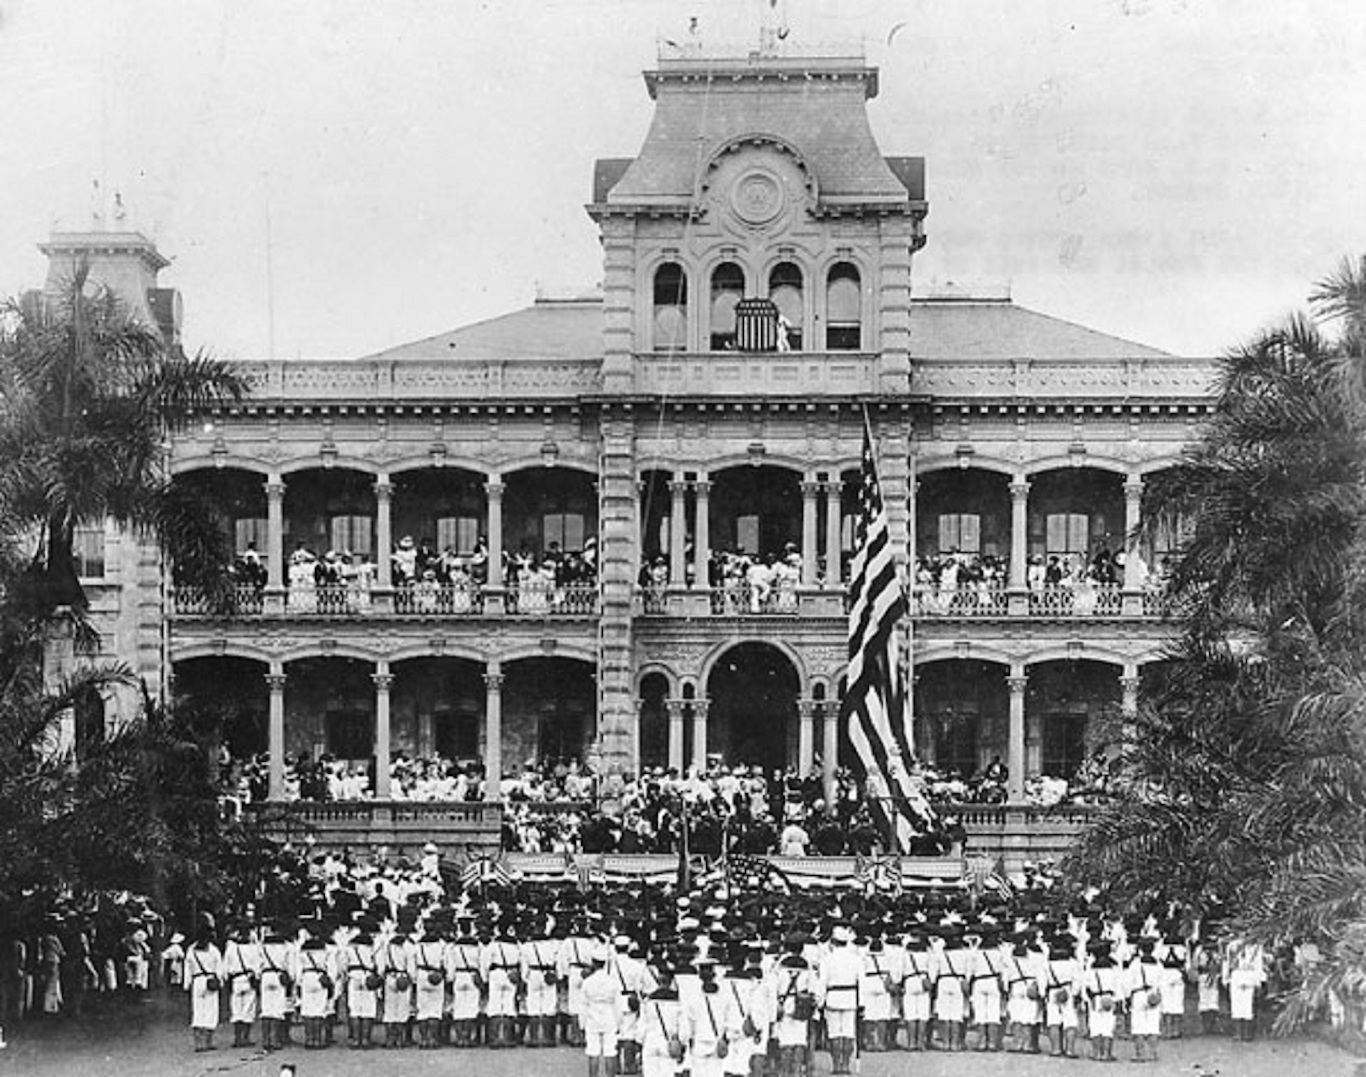 Raising of the American flag at the royal Iolani Palace, Honolulu, Hawaii,  August